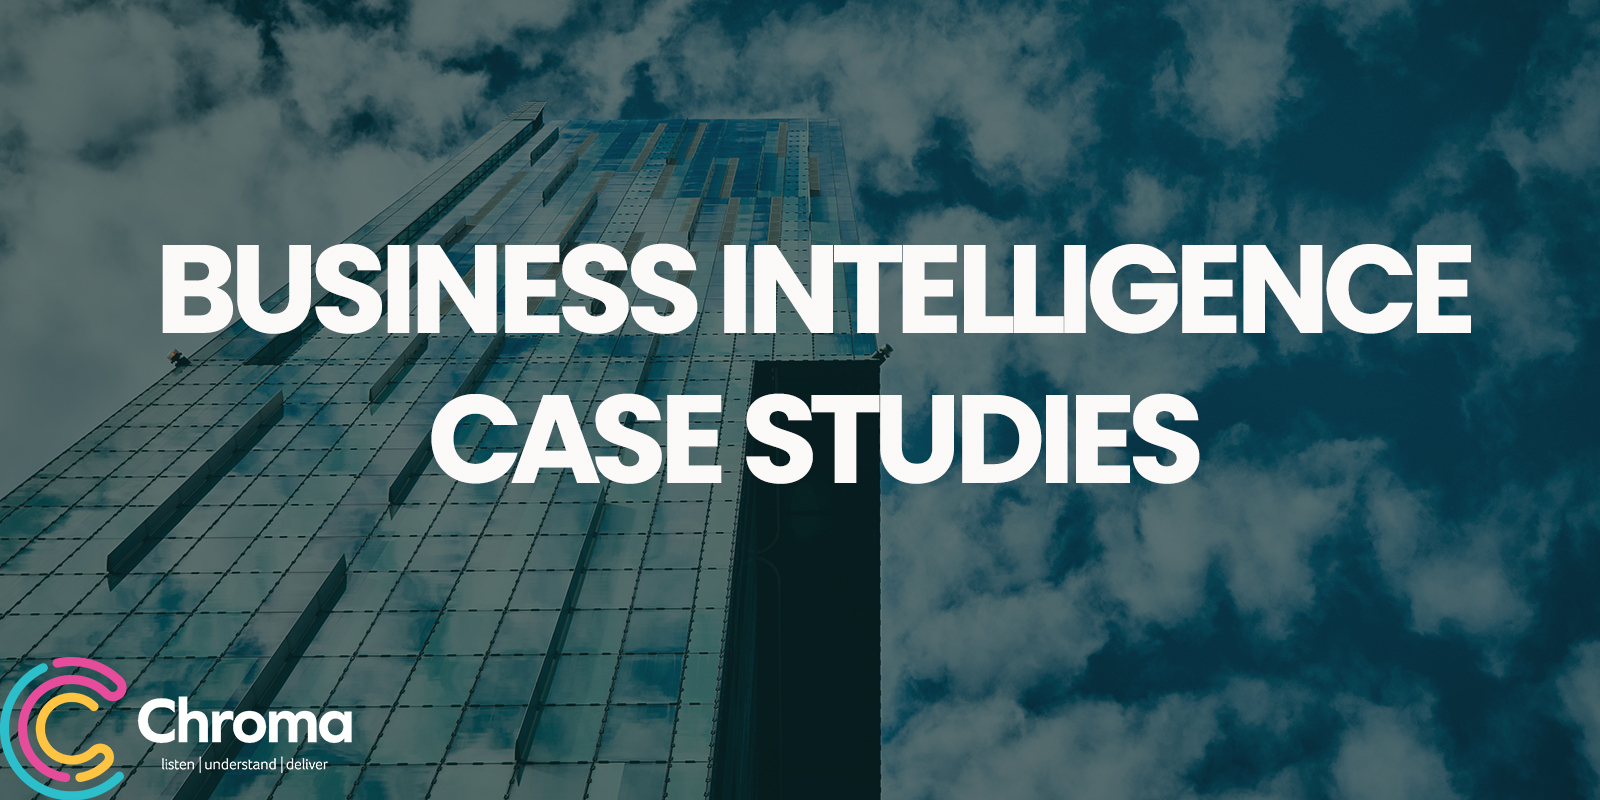 Business Intelligence Case Studies